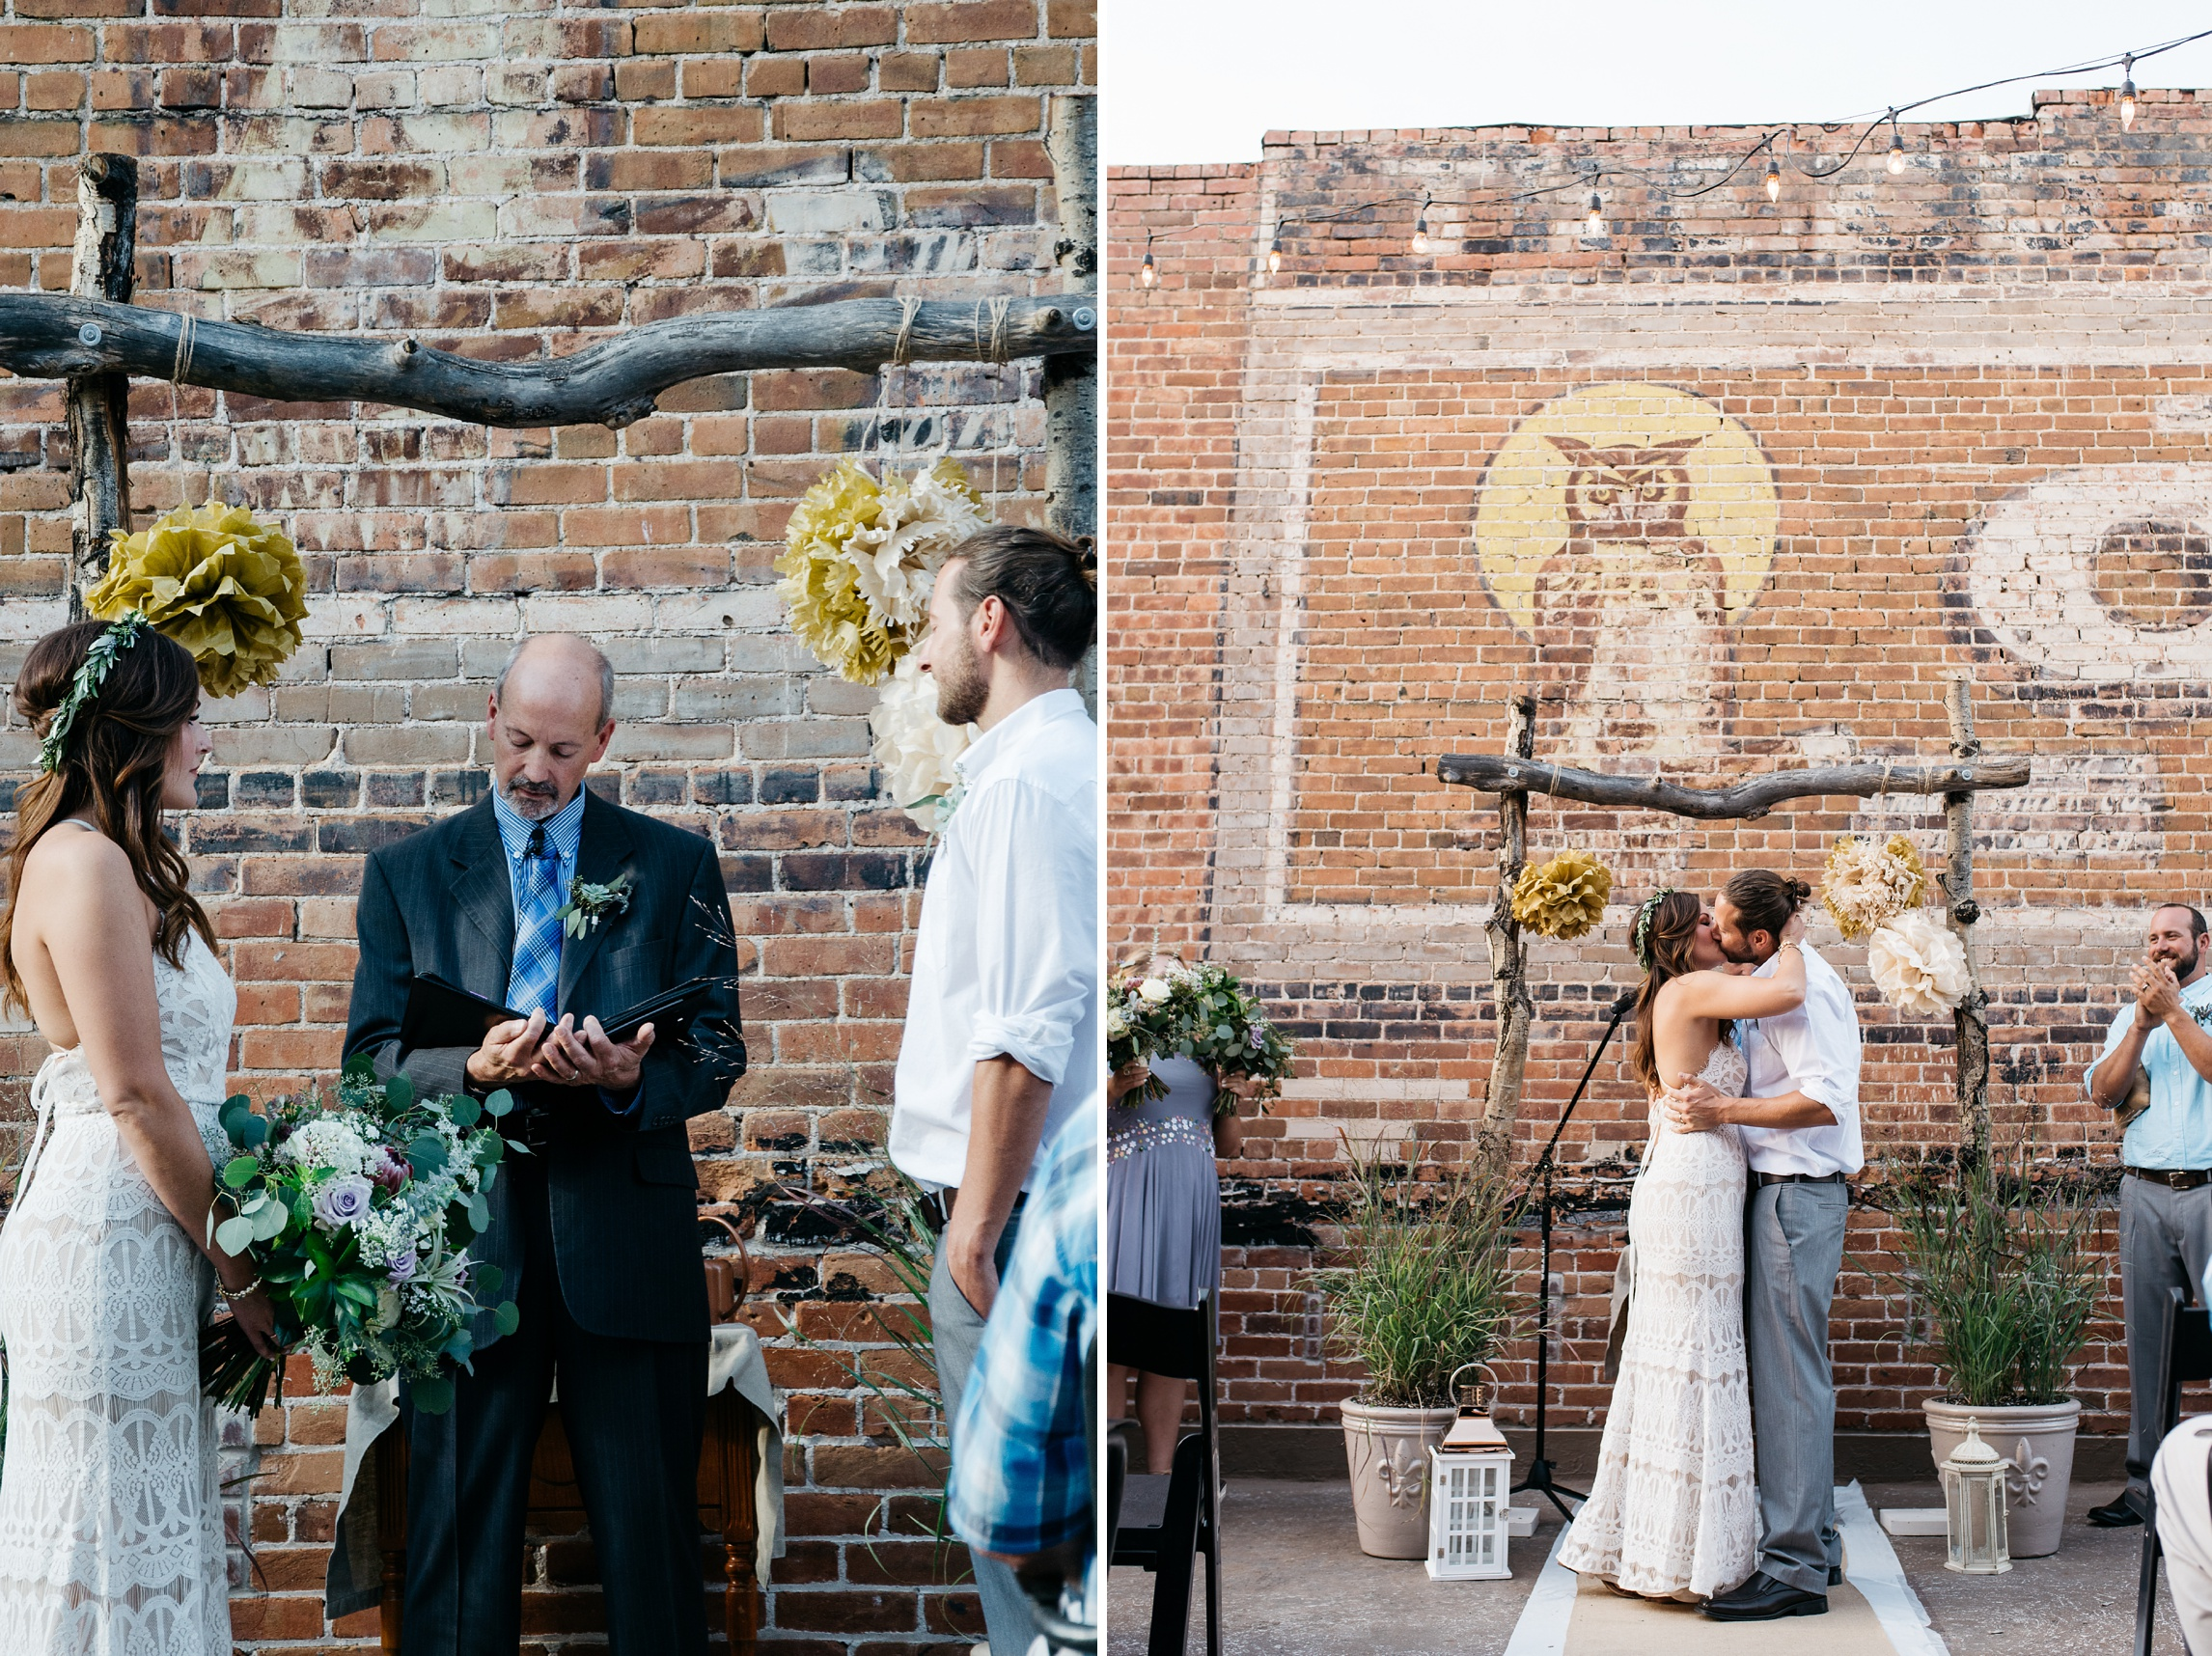 A bride and groom are married at an outdoor Colorado wedding in Old Town Fort Collins. Wedding photography by Sonja Salzburg of Sonja K Photography.